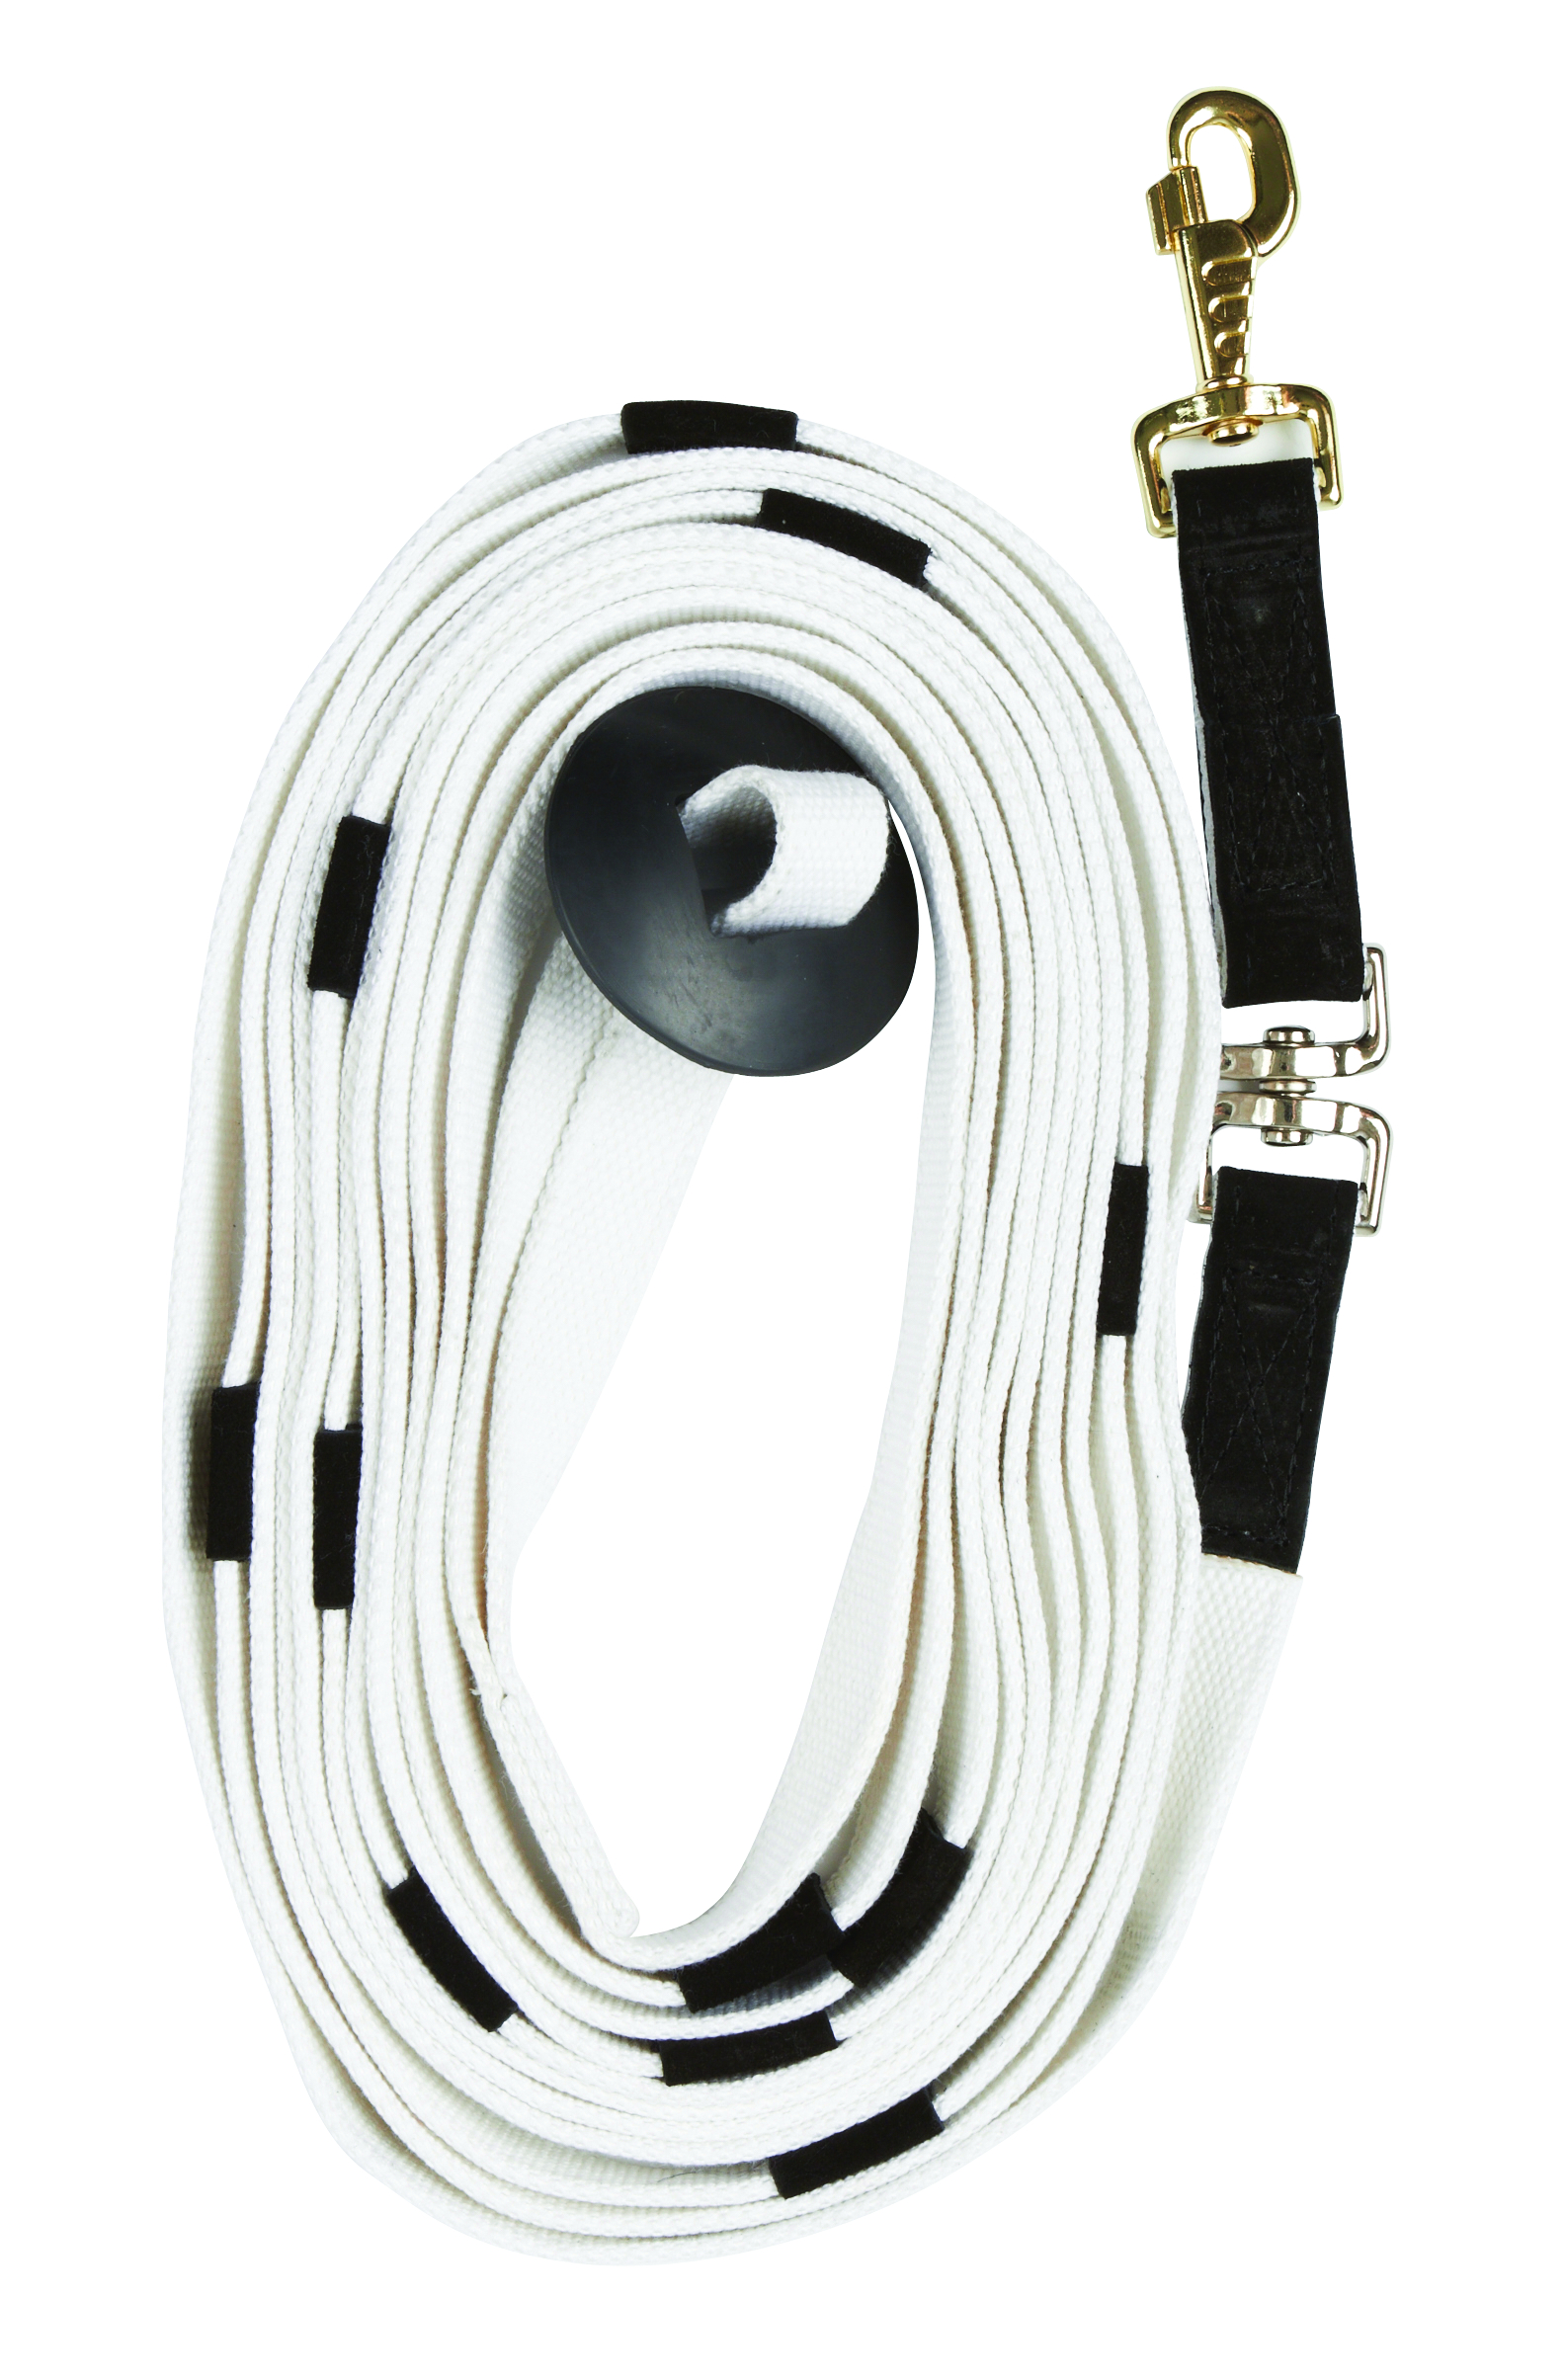 Kincade Cotton Web Lunge Line With Donut